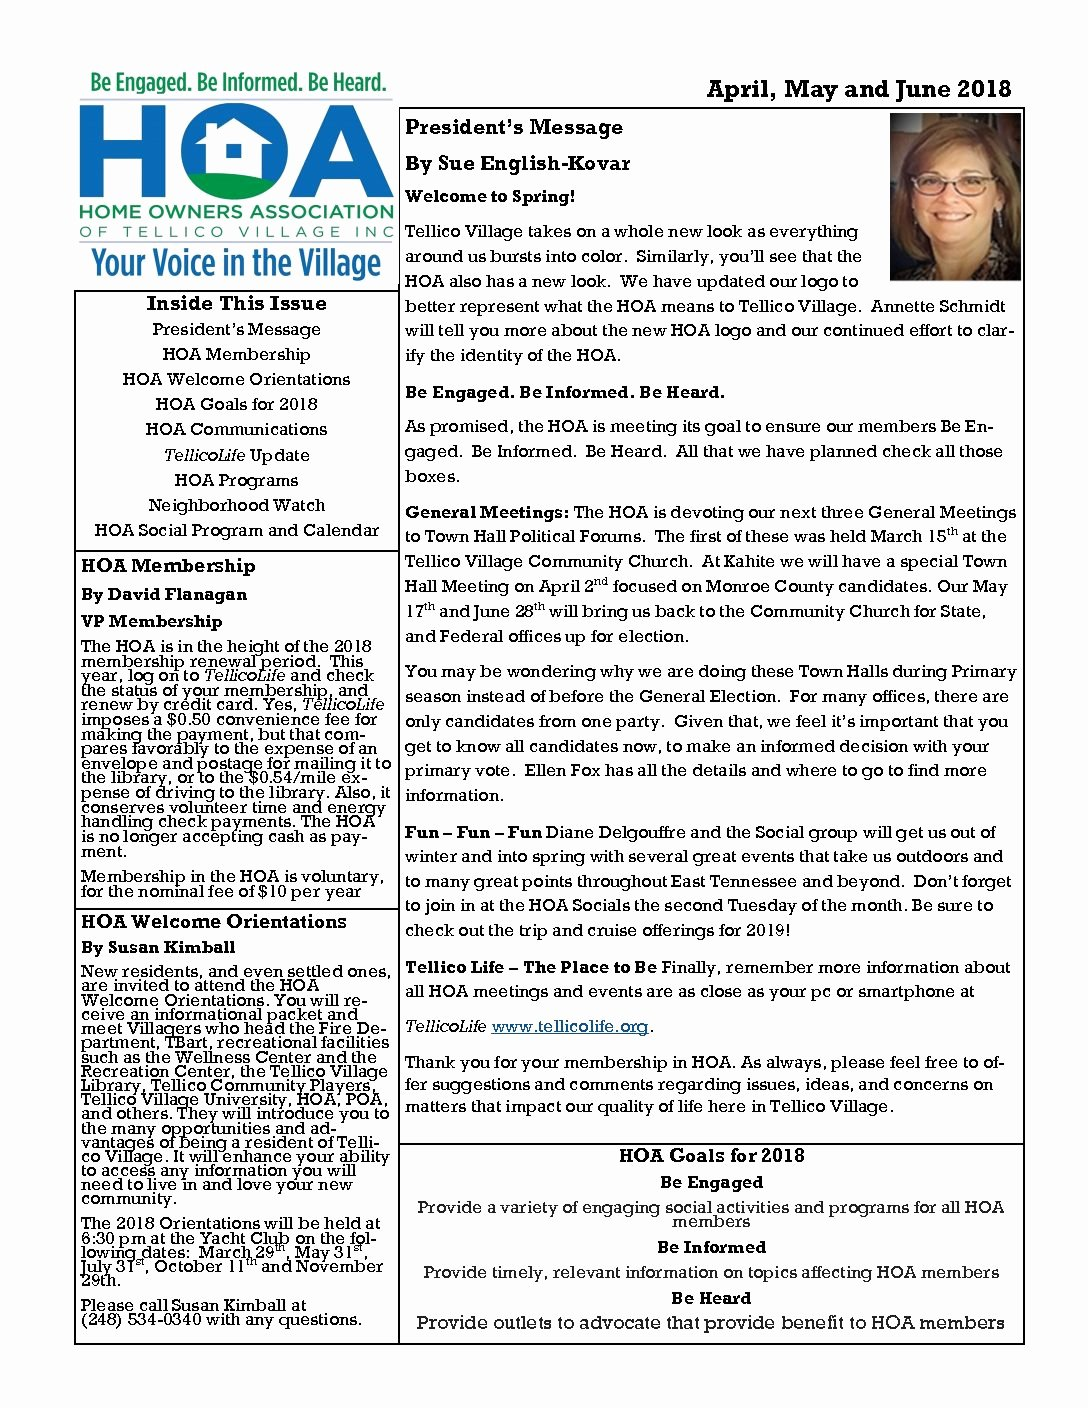 Homeowners association Newsletter Template Best Of Tellico Village Homeowners association – Be Informed – Be